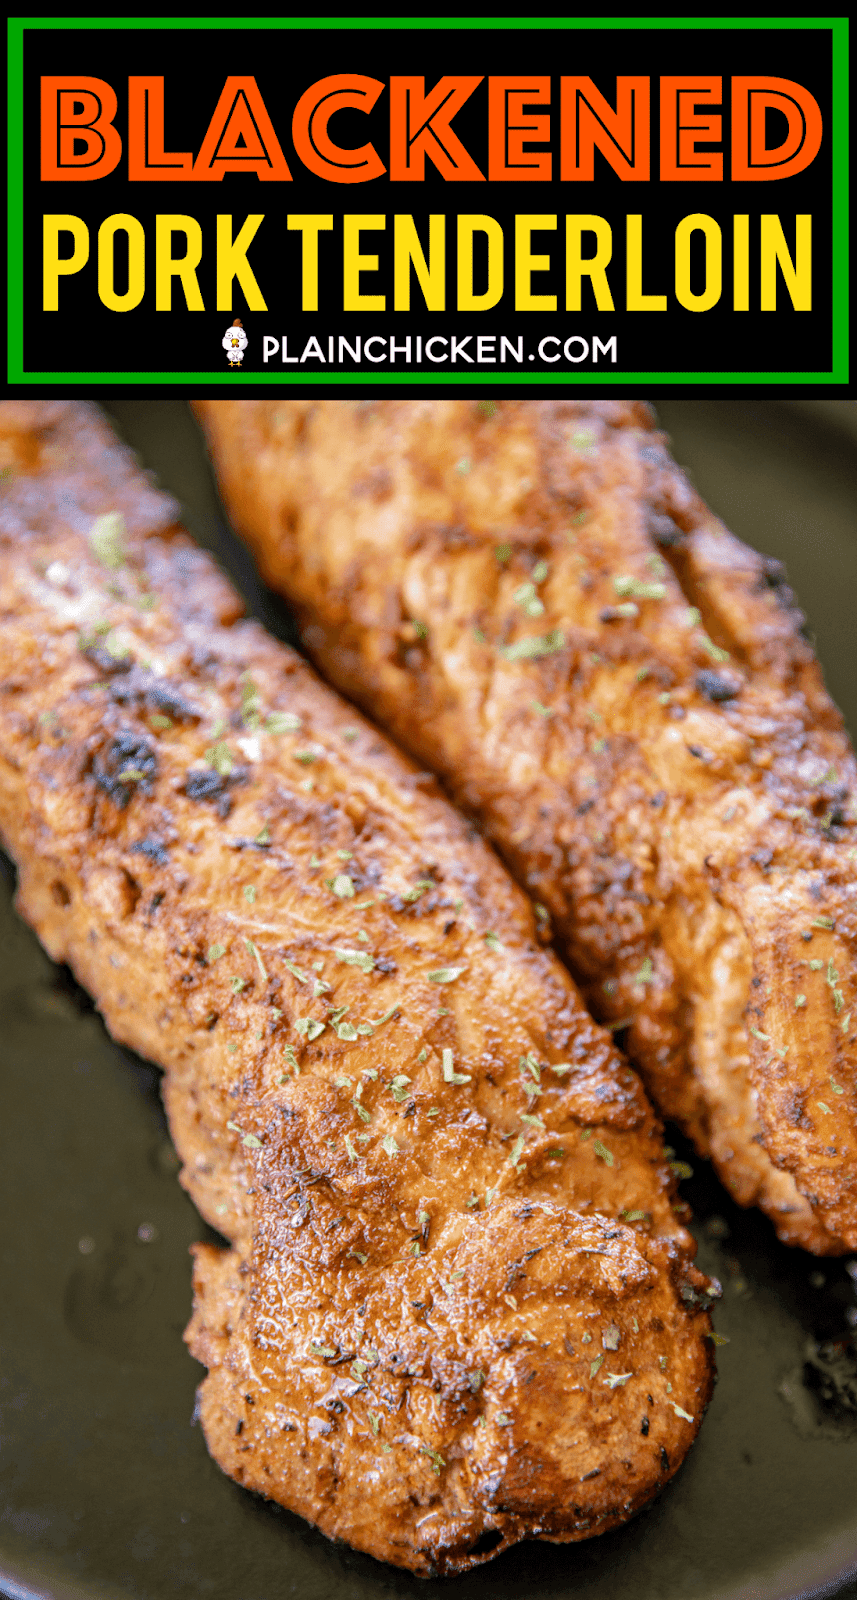 Blackened Pork Tenderloin - the BEST pork tenderloin EVER! SO much amazing flavor! Pork is marinated overnight in a mixture of garlic, onion, thyme, oregano, paprika, tarragon, salt, red pepper, black pepper, olive oil and Worcestershire sauce. Quickly pan sear the pork tenderloins and finish off in the oven. SO easy and delicious! Leftover are great on roll with remoulade sauce. Don't miss this one! #pork #porktenderloin